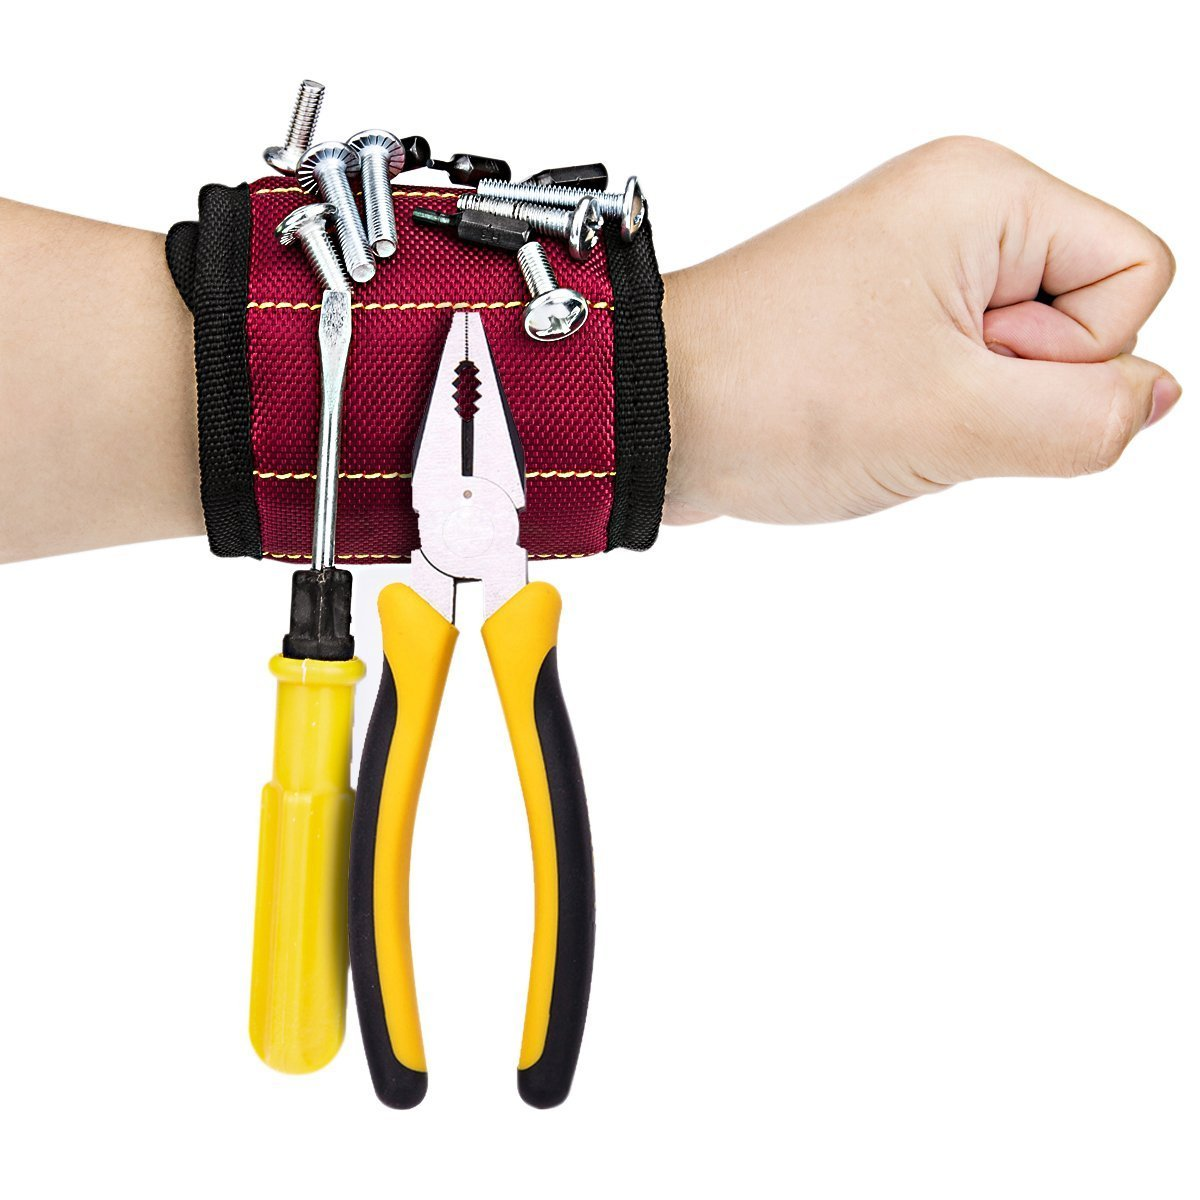 Heavy Duty Magnetic Wristband with Super Strong Magnets for Holding Screws, Nails, Drill Bits Red